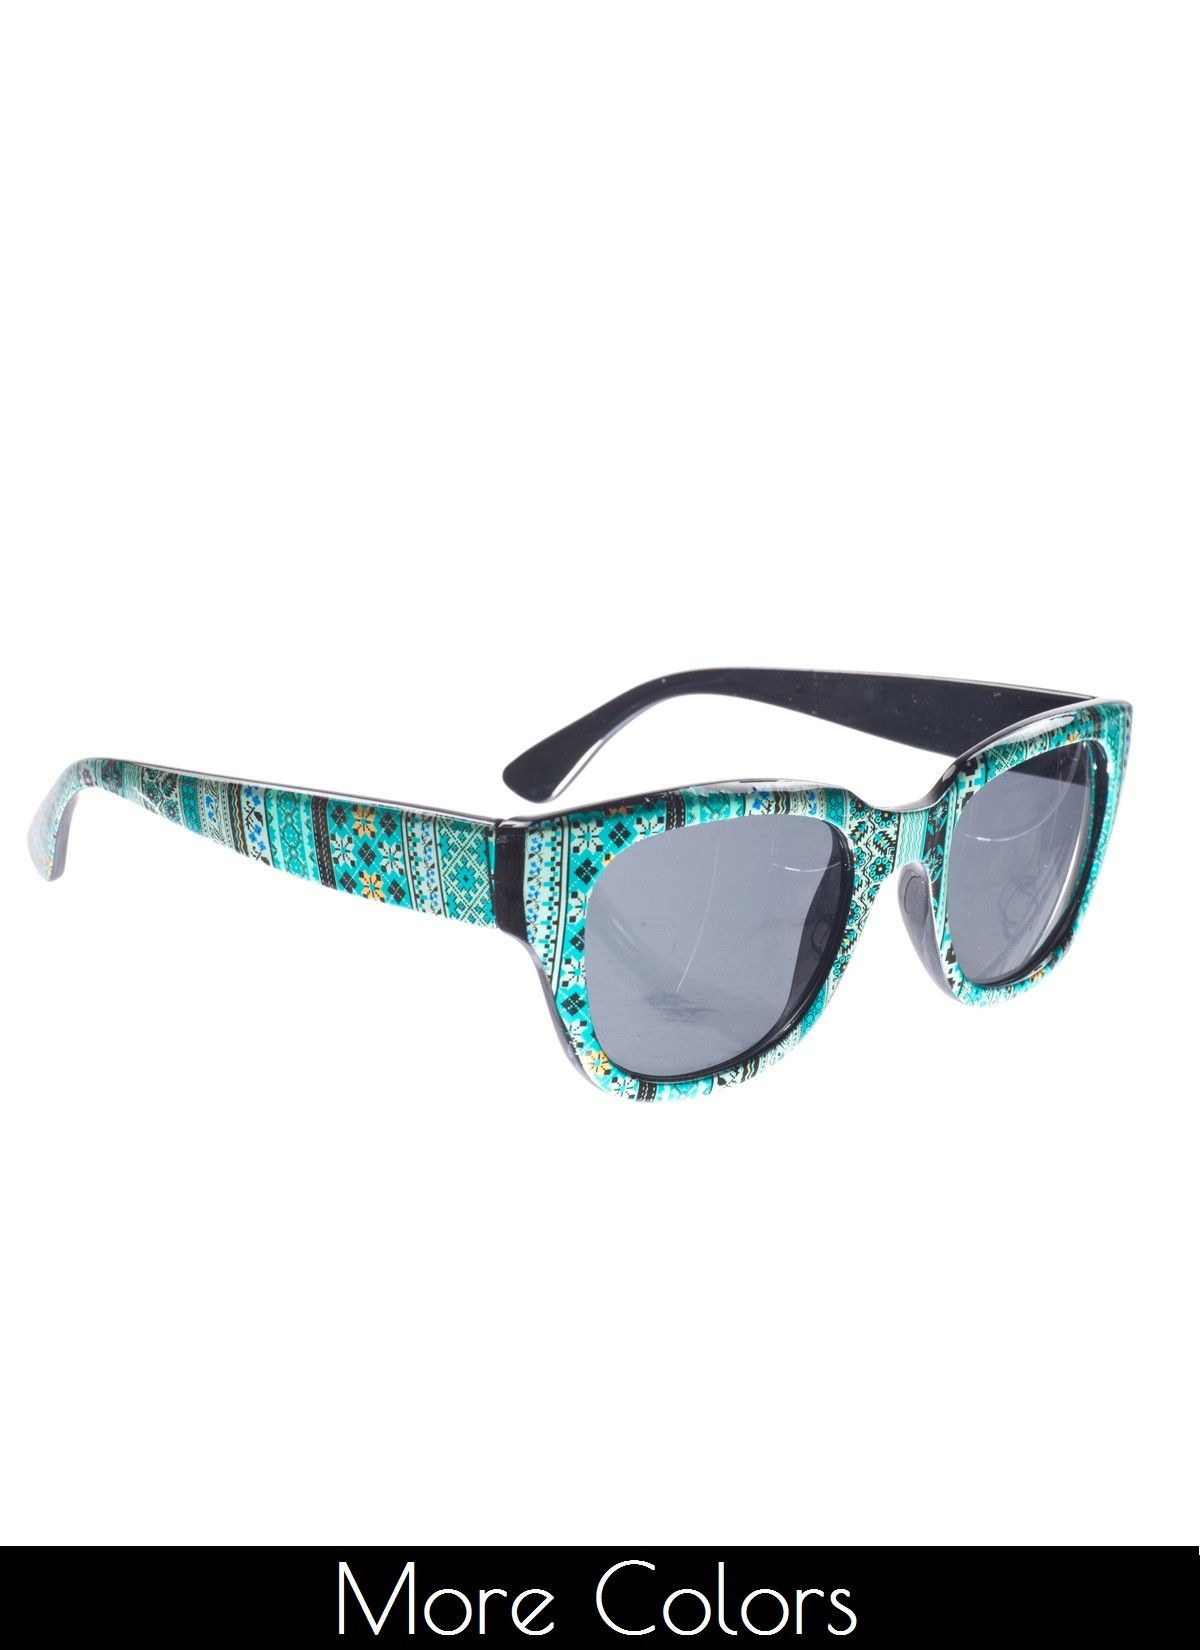 Shop Prima Donna - Fleur Tribe Sunglasses bySolar Fashion at Prima donna  #SPDspringstyle